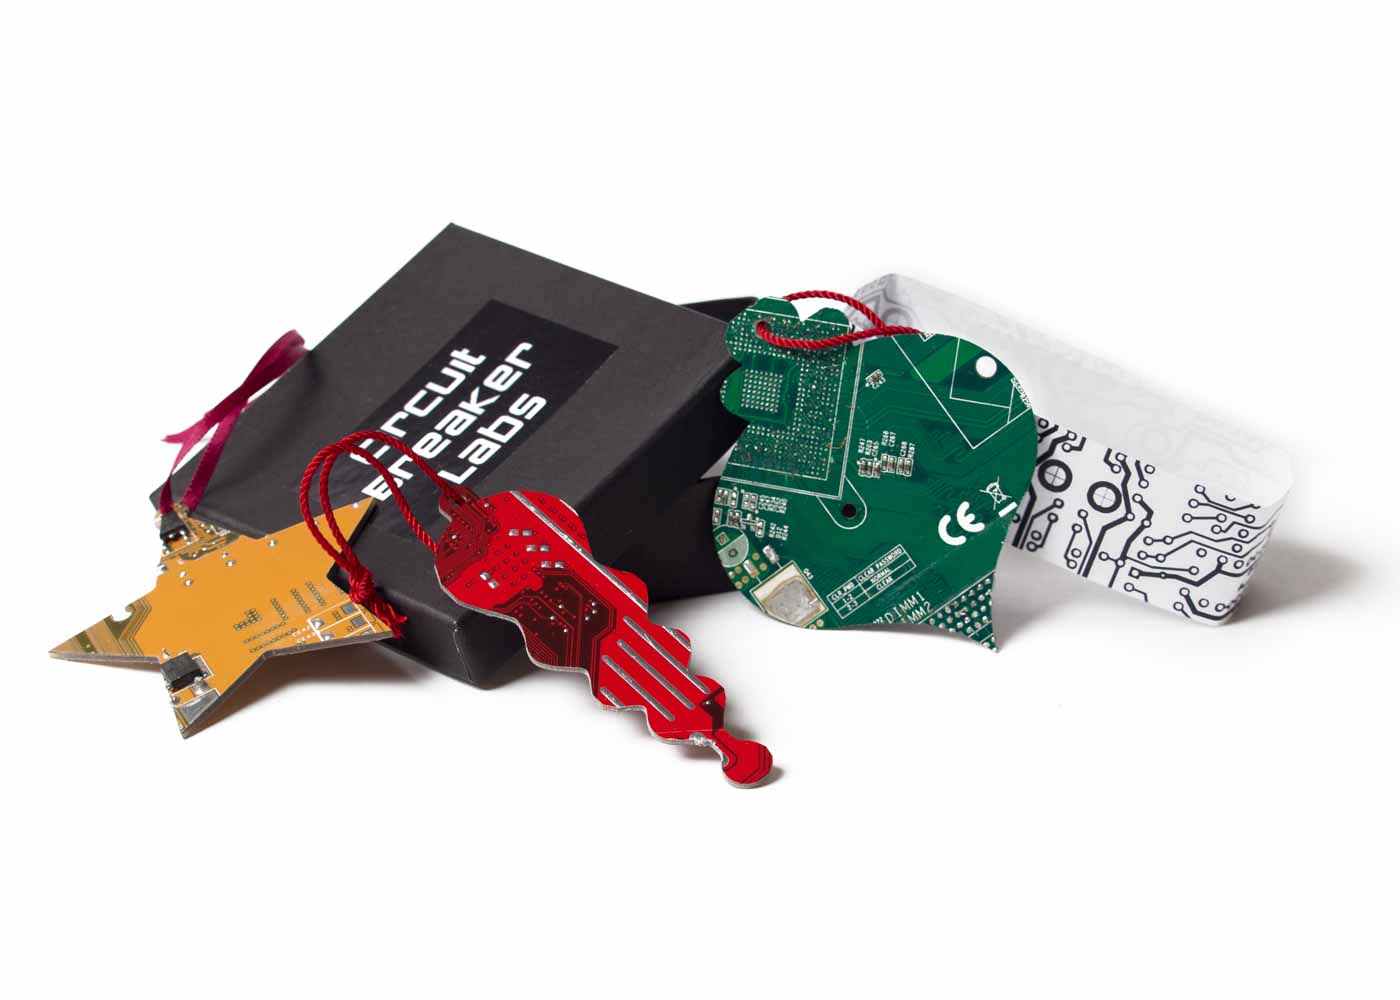 Circuit board ornaments by CircuitBreakerLabs.